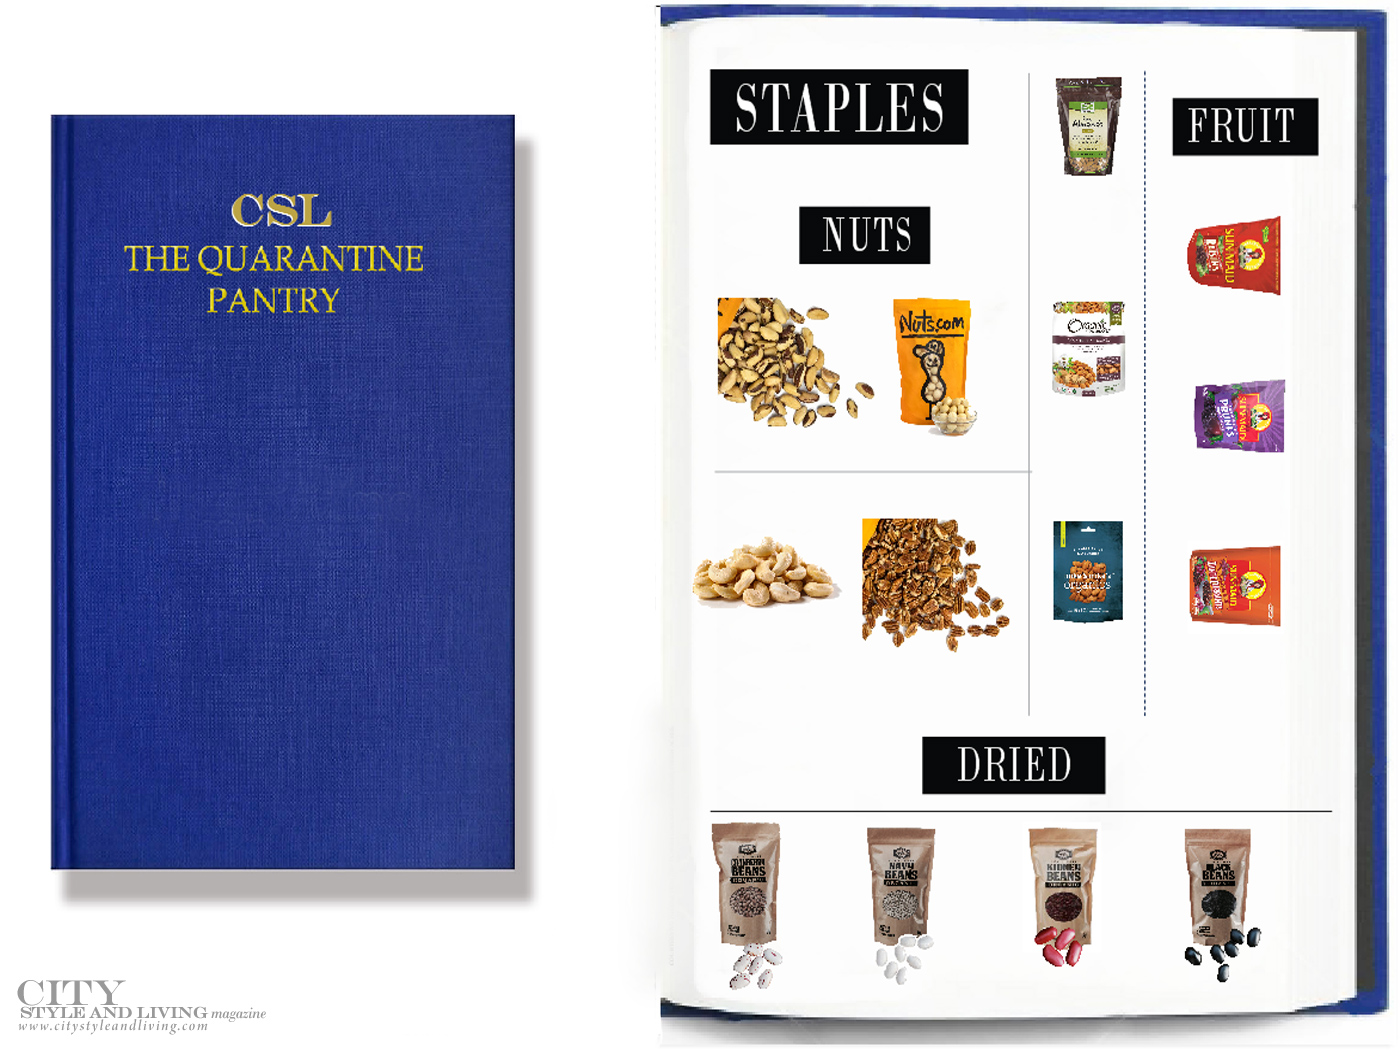 City Style and Living Magazine fall 2020 Quarantine Pantry staples, nuts, beans